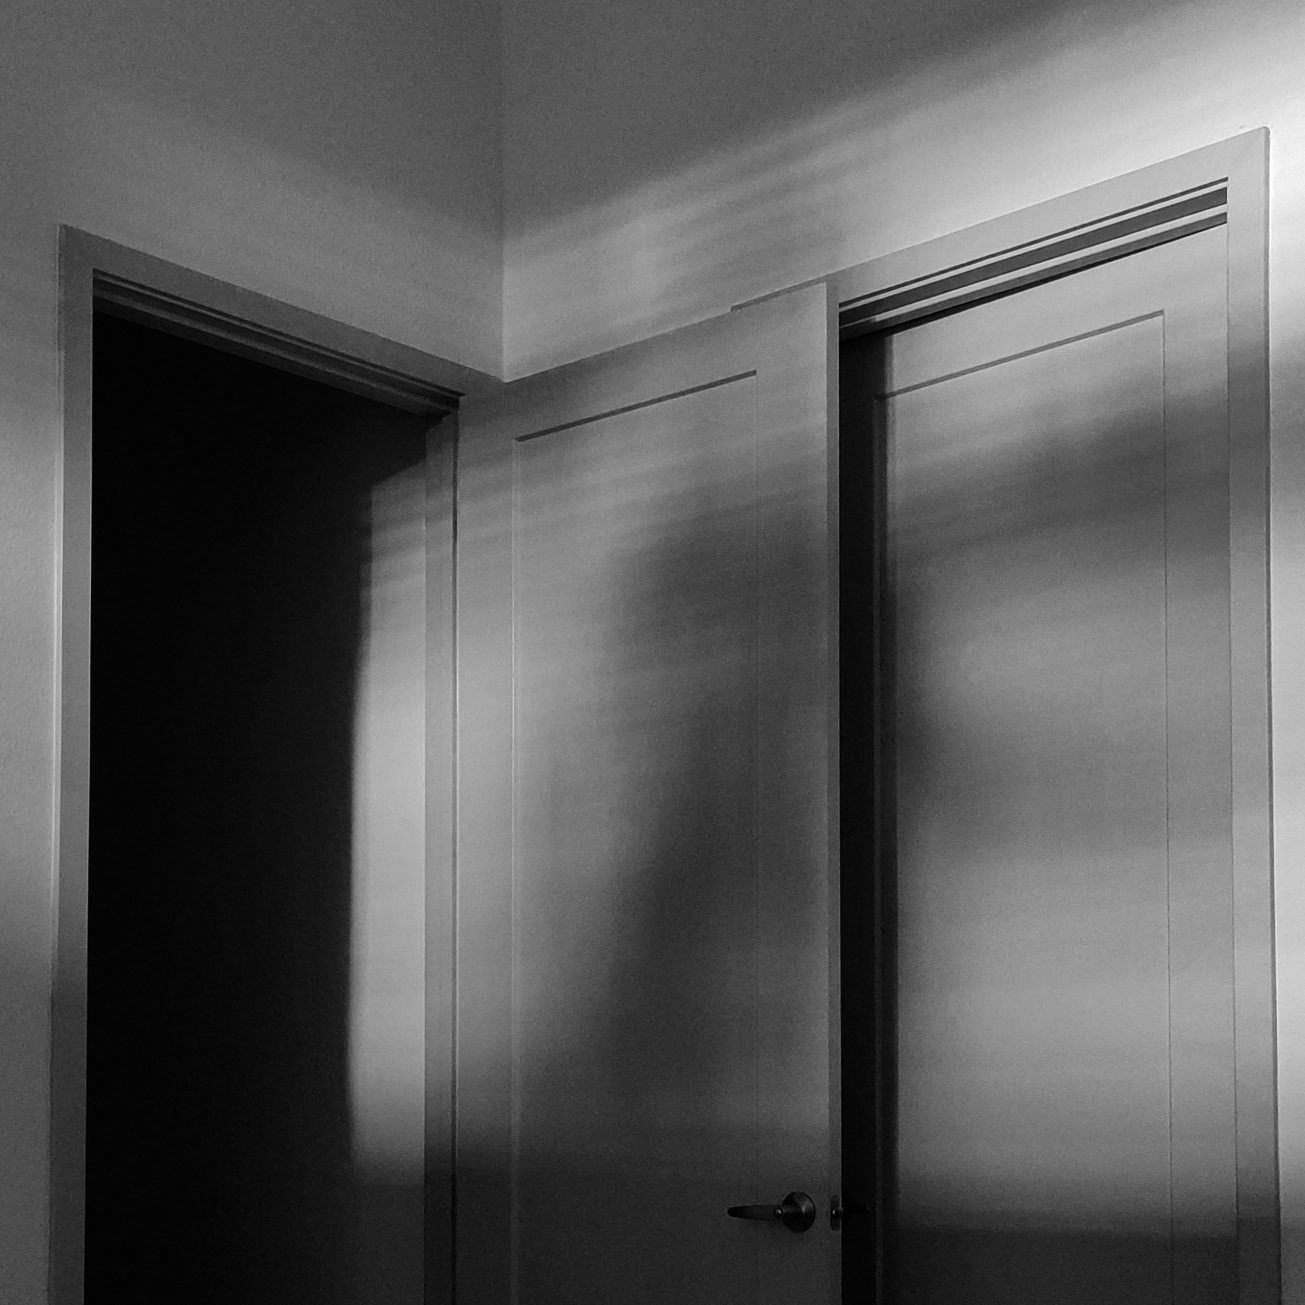 Black and white photo of an open door into darkness.